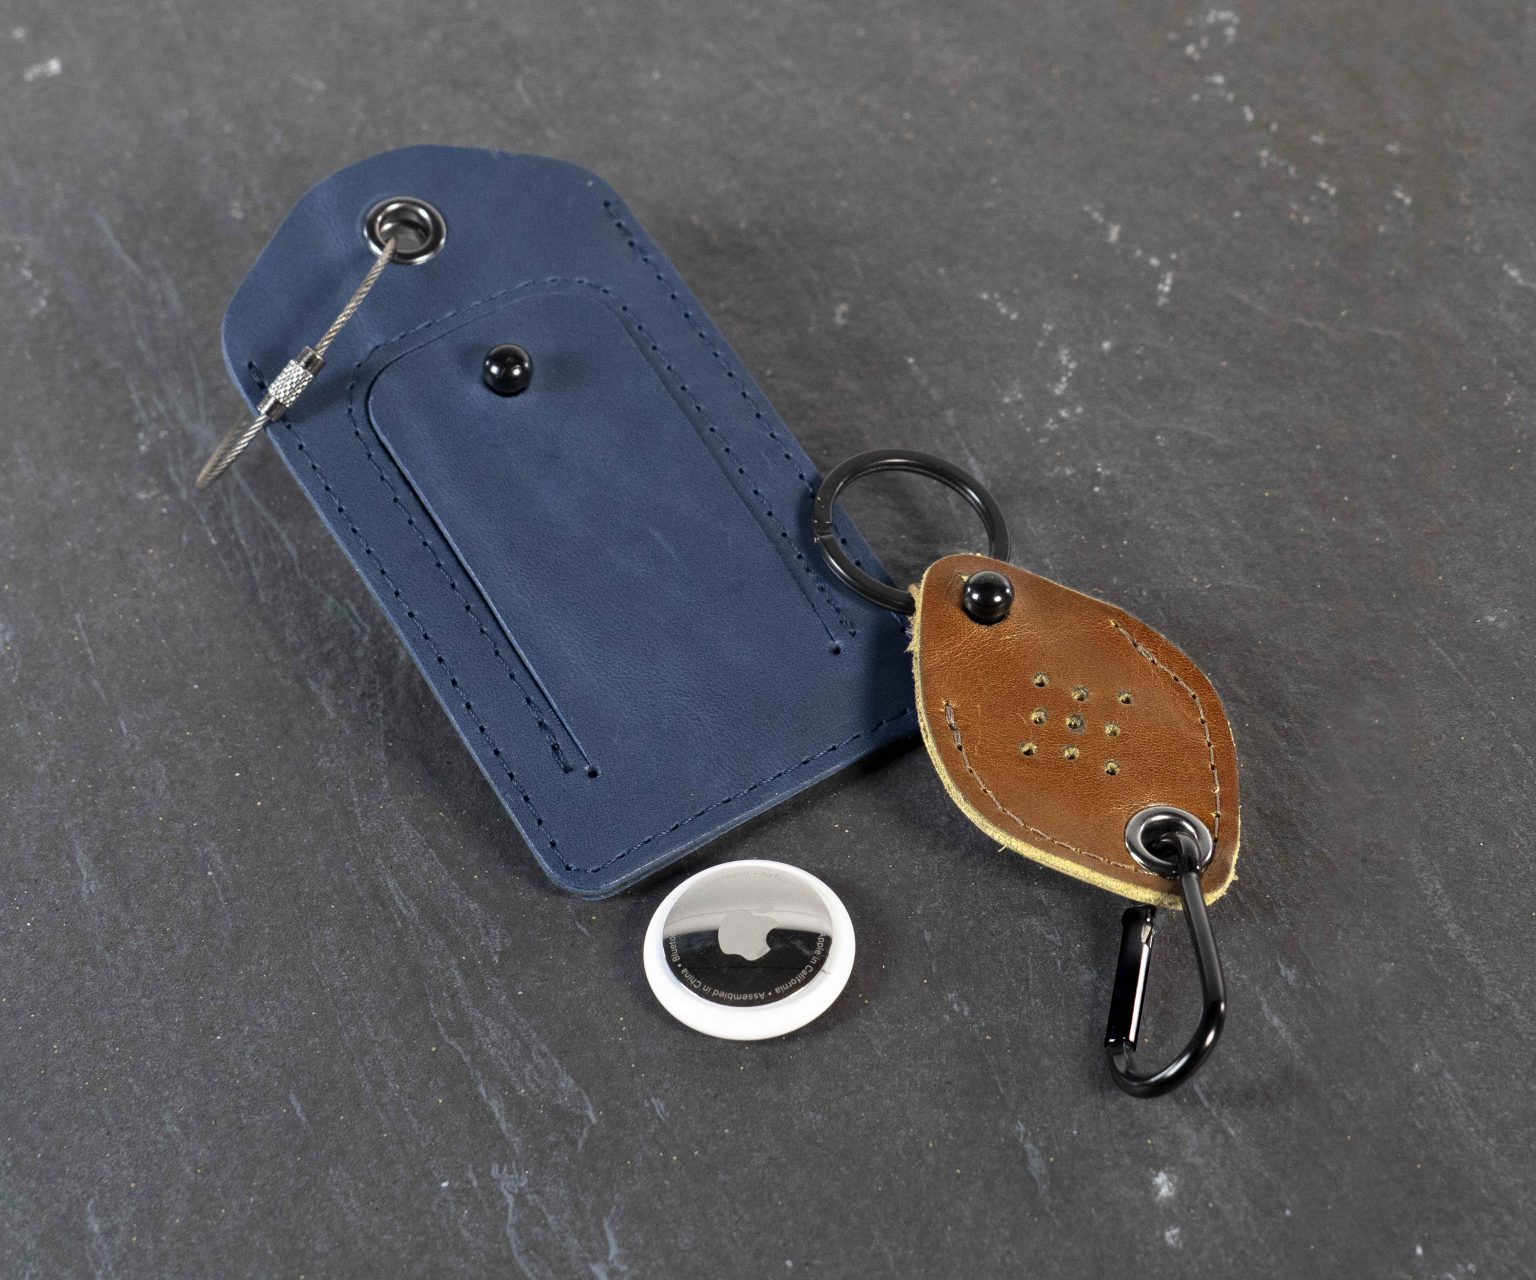 New AirTag accessories from WaterField Designs: AirTag owners just got two more options for actually using their trackers.